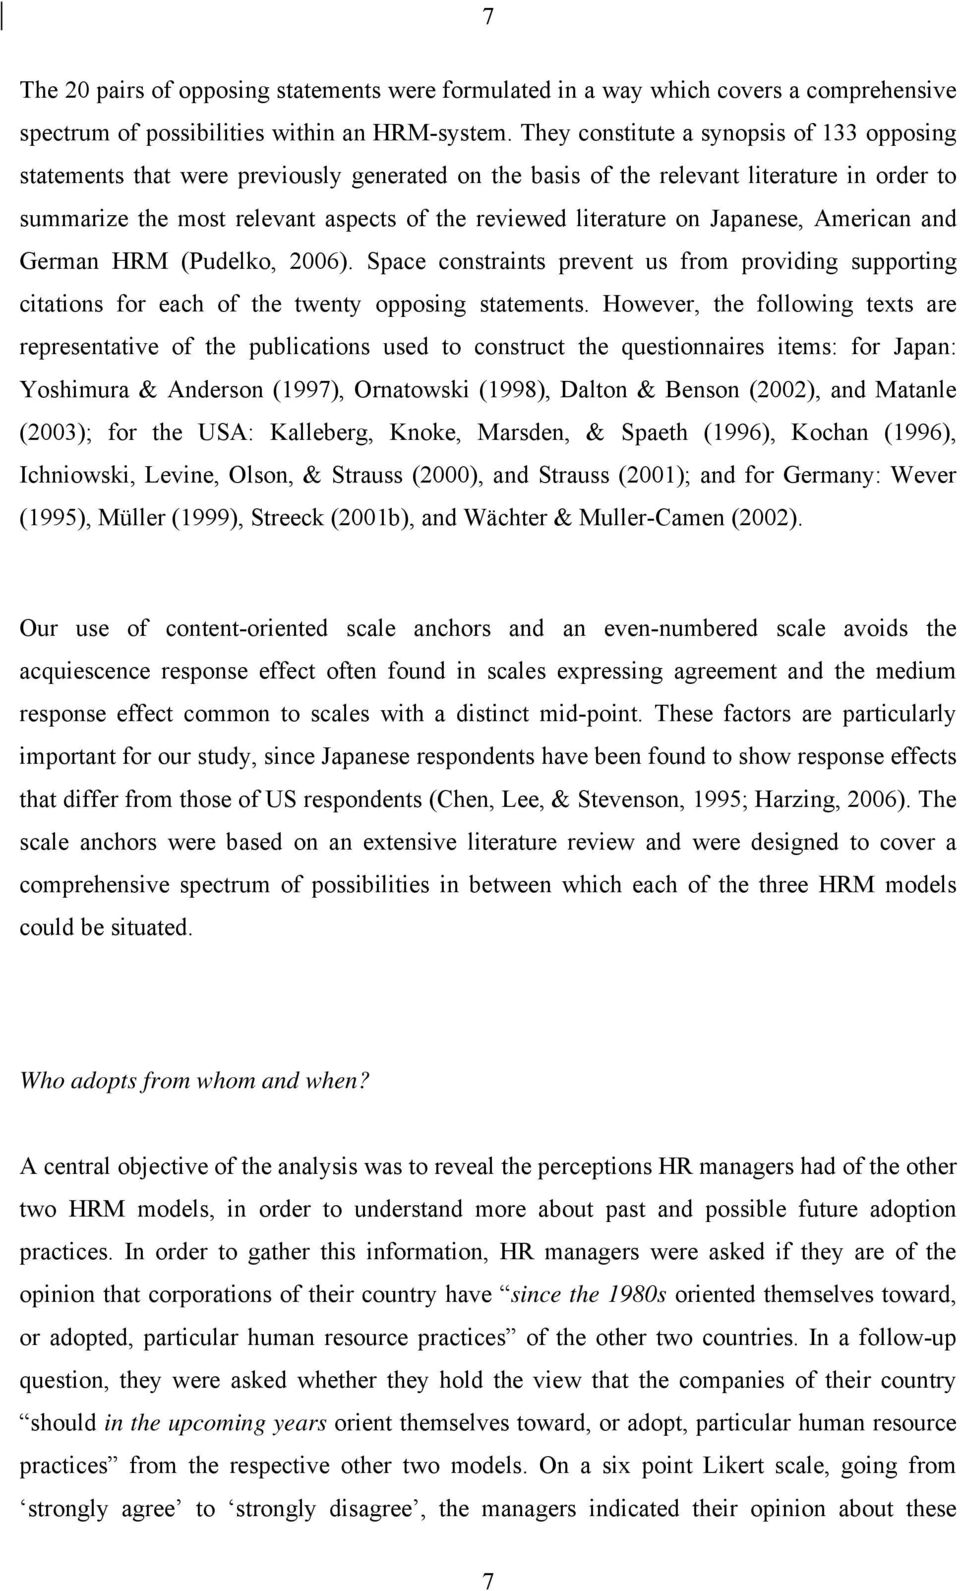 on Japanese, American and German HRM (Pudelko, 2006). Space constraints prevent us from providing supporting citations for each of the twenty opposing statements.